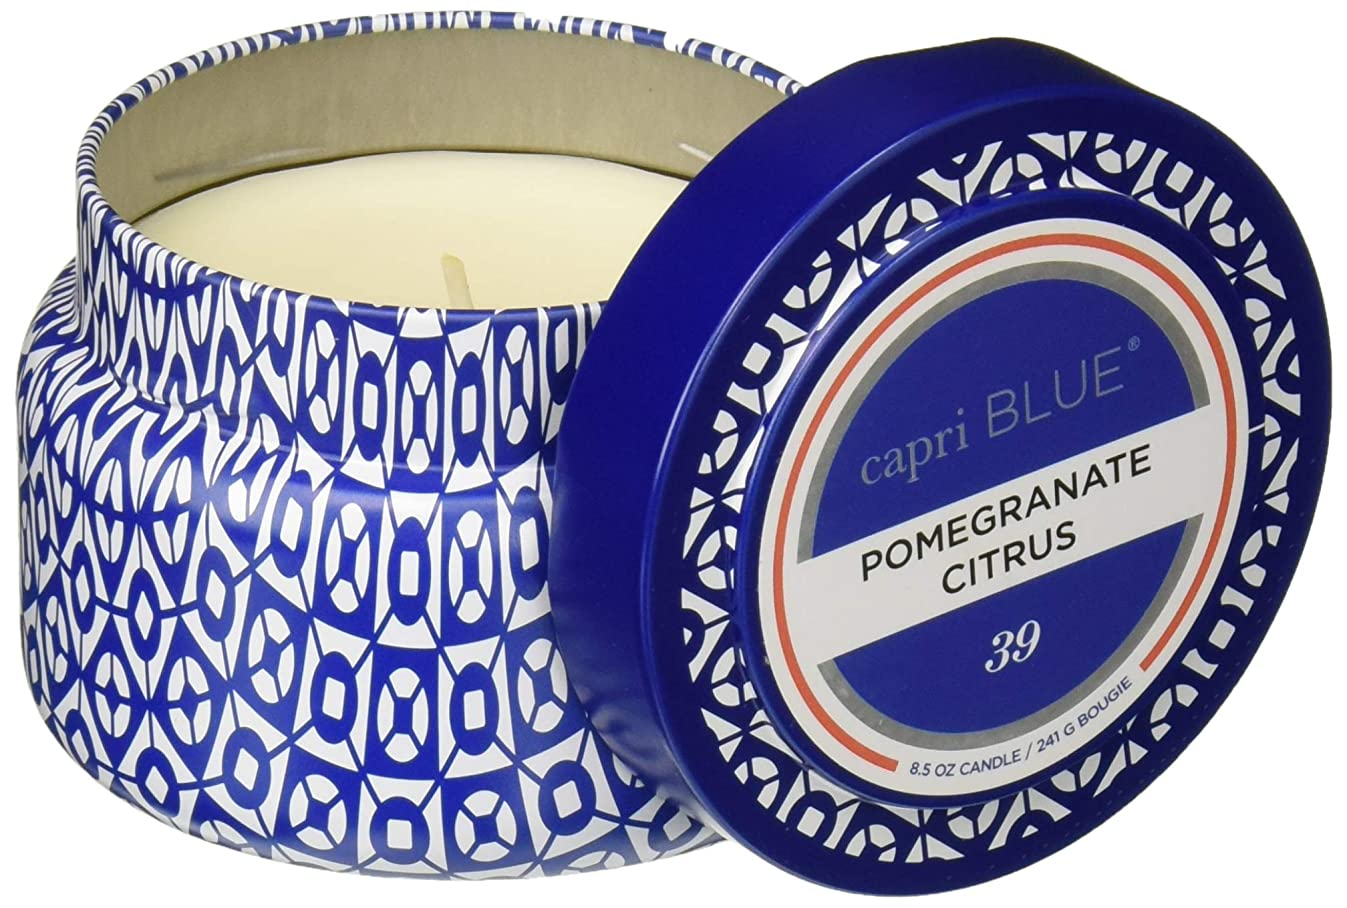 Capri Blue SYNCHKG033206 Pomegranate Citrus Printed Travel Tin 8.5oz, None, 8 Ounce